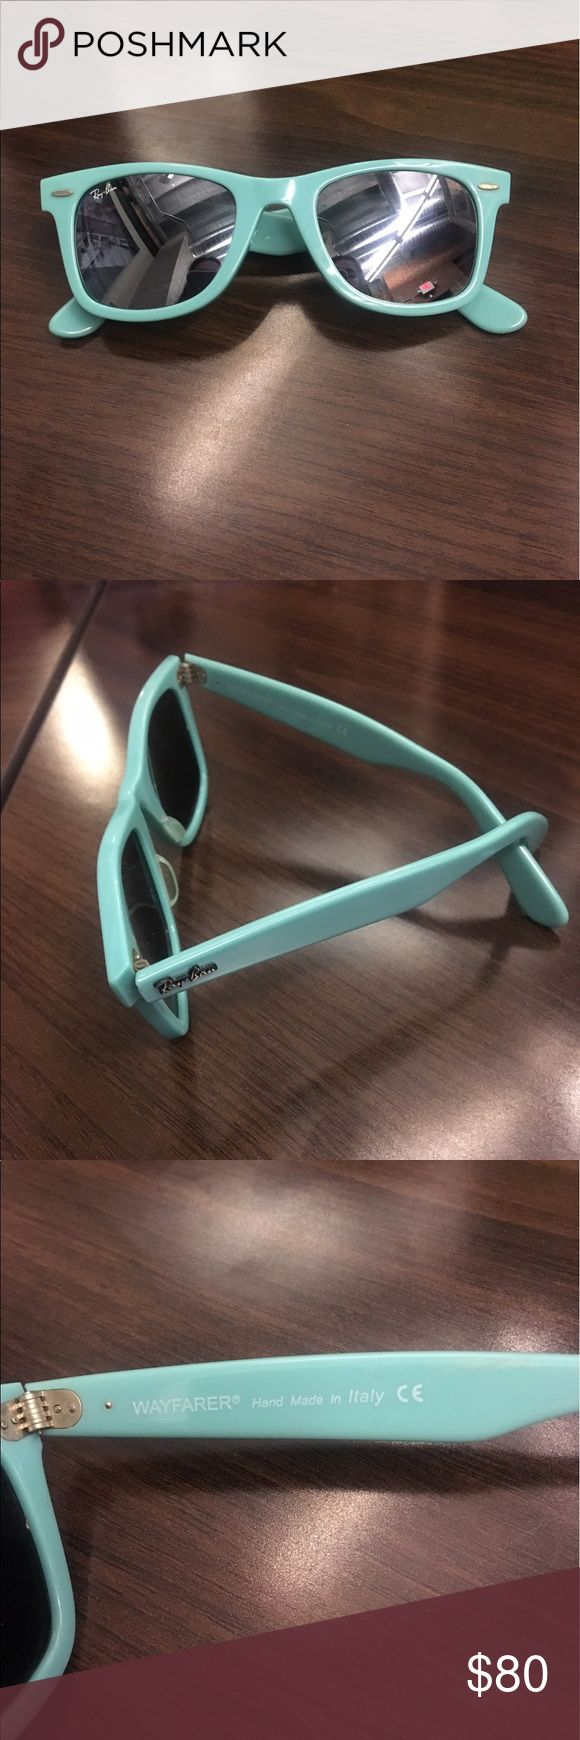 RAY-BAN Tinted Wayfarer Sunglasses - Turquoise Turquoise acetate Ray-Ban Wayfarer sunglasses with tinted lenses and logo accents at temples. Does not include case. Listed on alternate sites for $90+. Ray-Ban Accessories Sunglasses